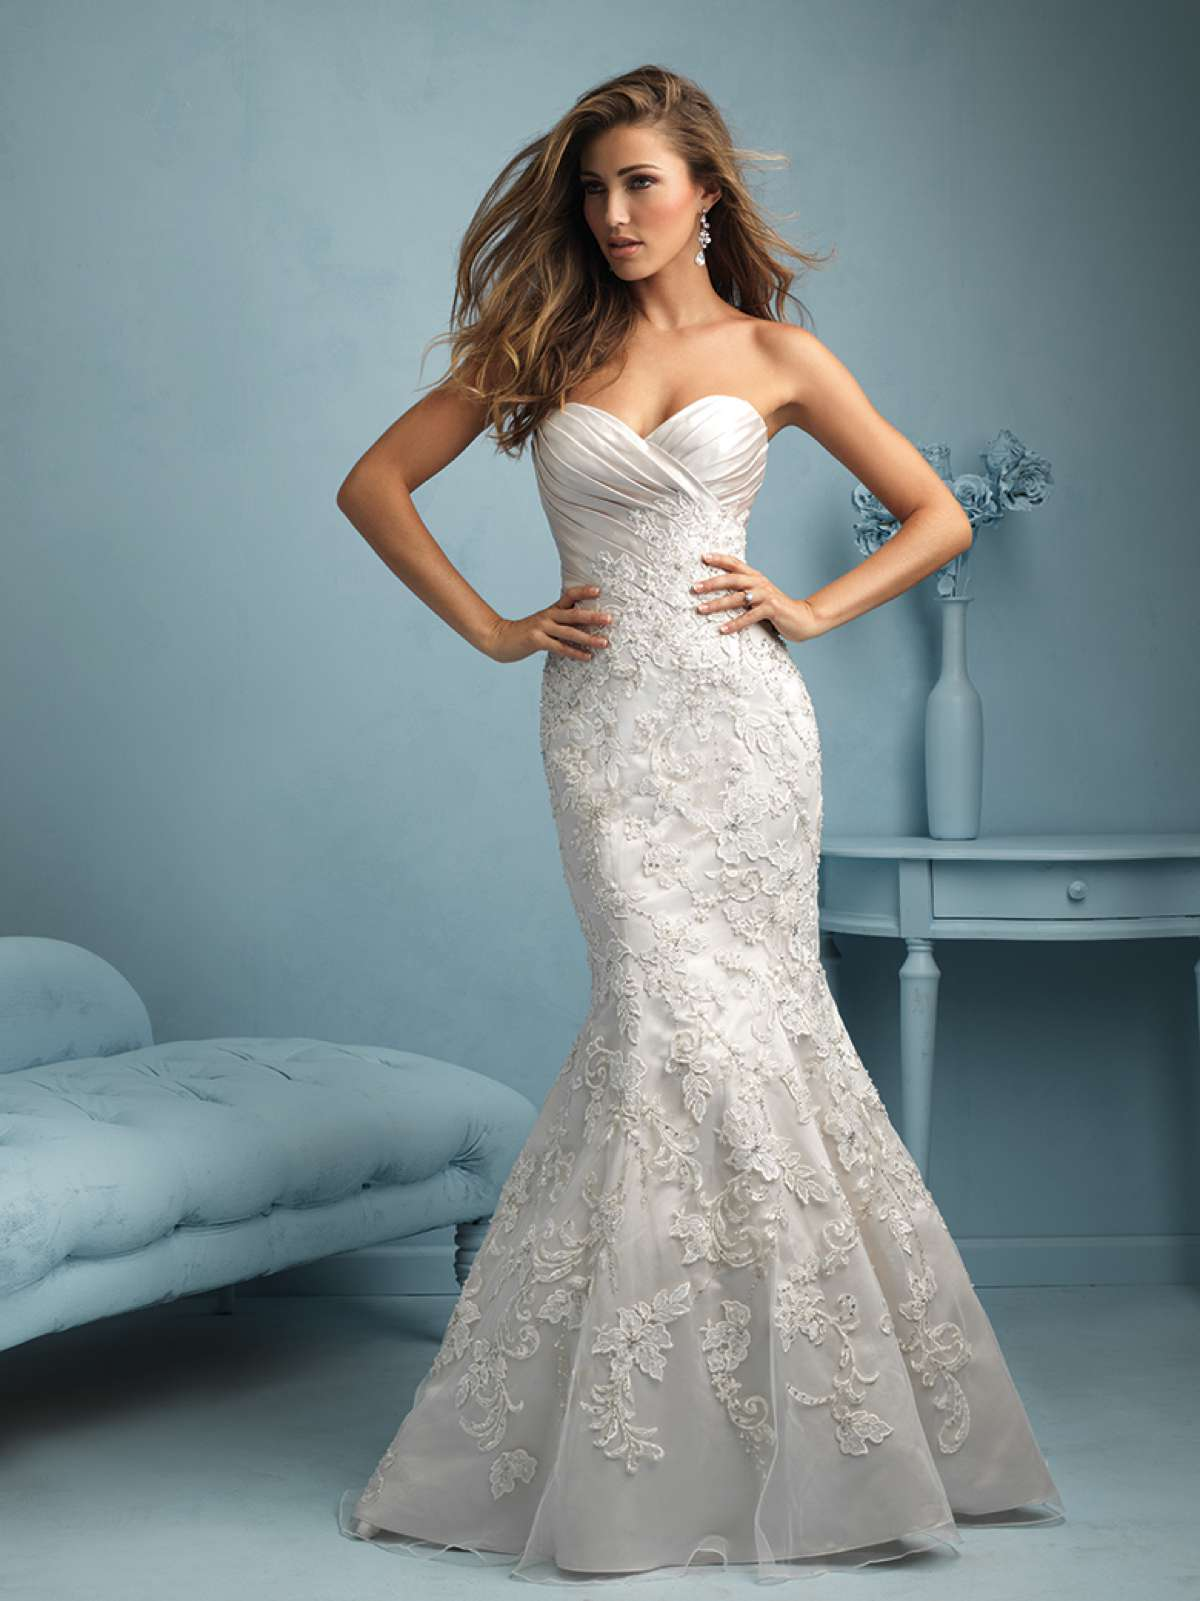 Find A Wedding Dress To Suit Your Shape